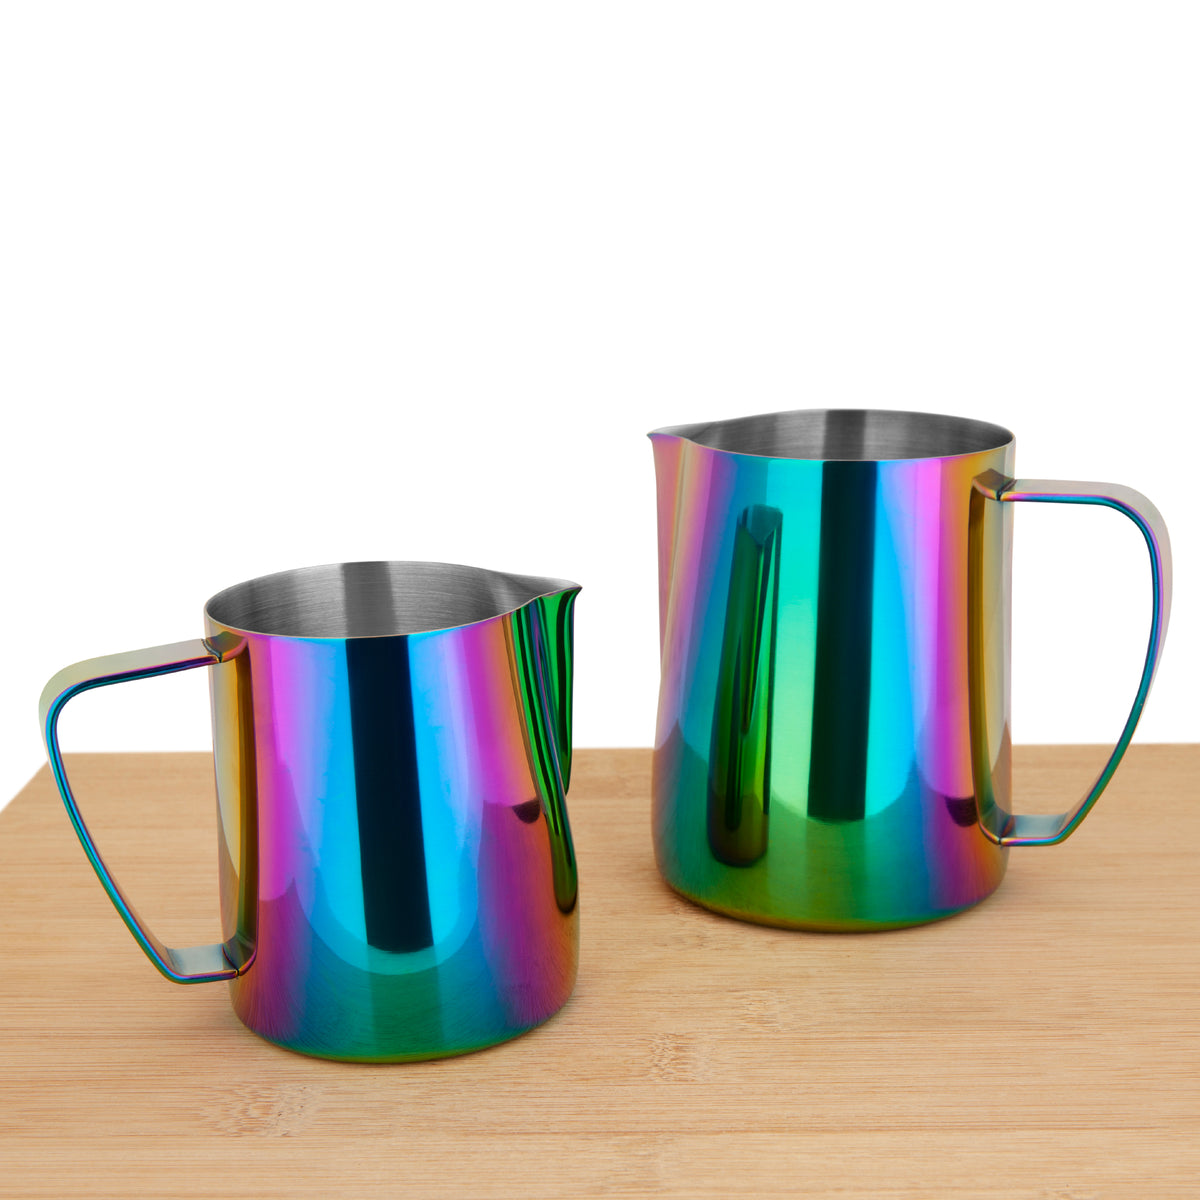 EspressoWorks Stainless Steel Milk Frothing Jug - Rainbow (350ml and 600ml)